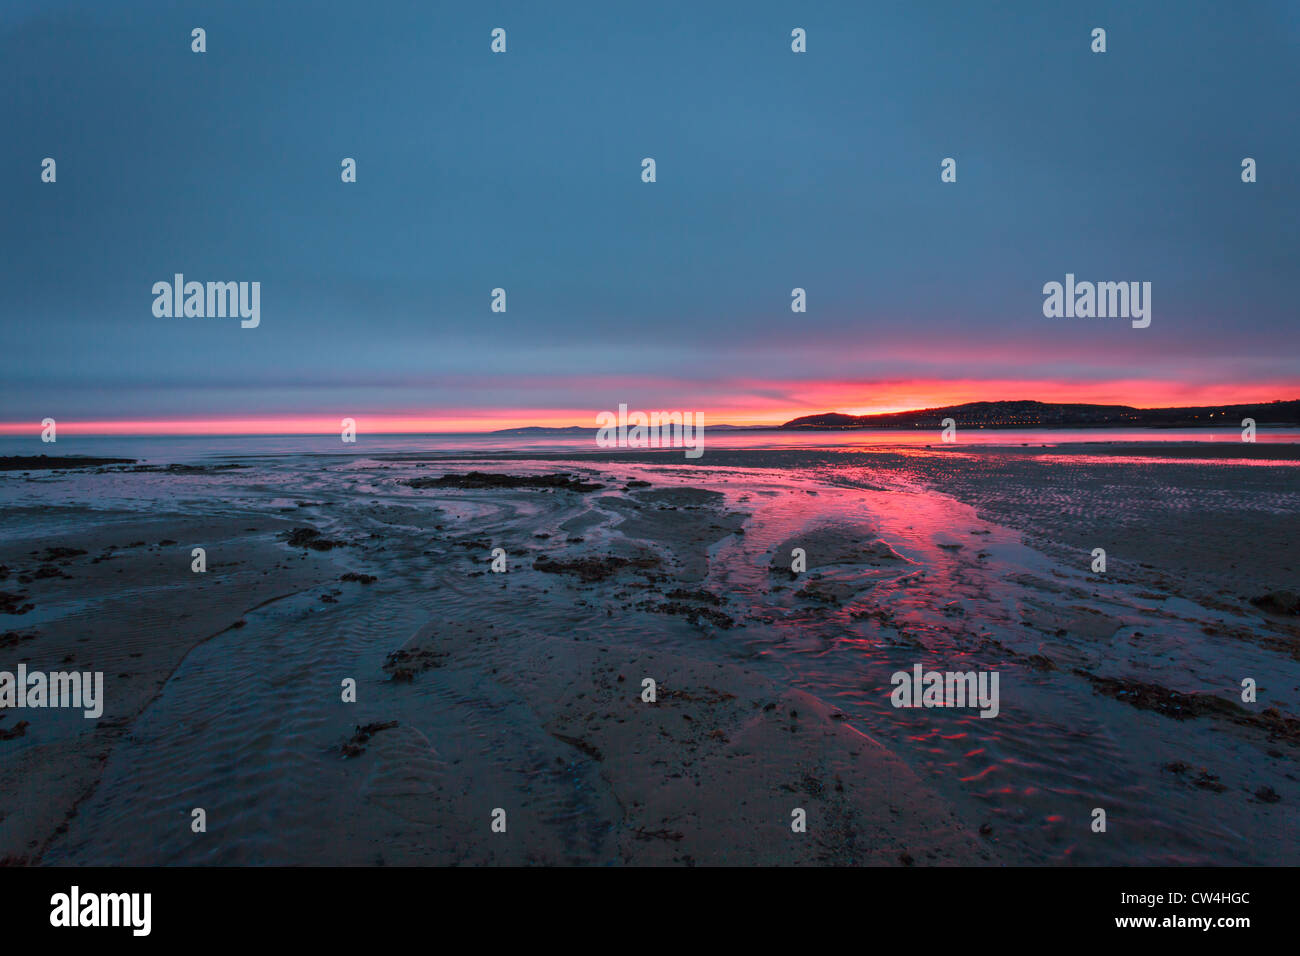 Sunrise over a beach in Wales showing red sky - Stock Image